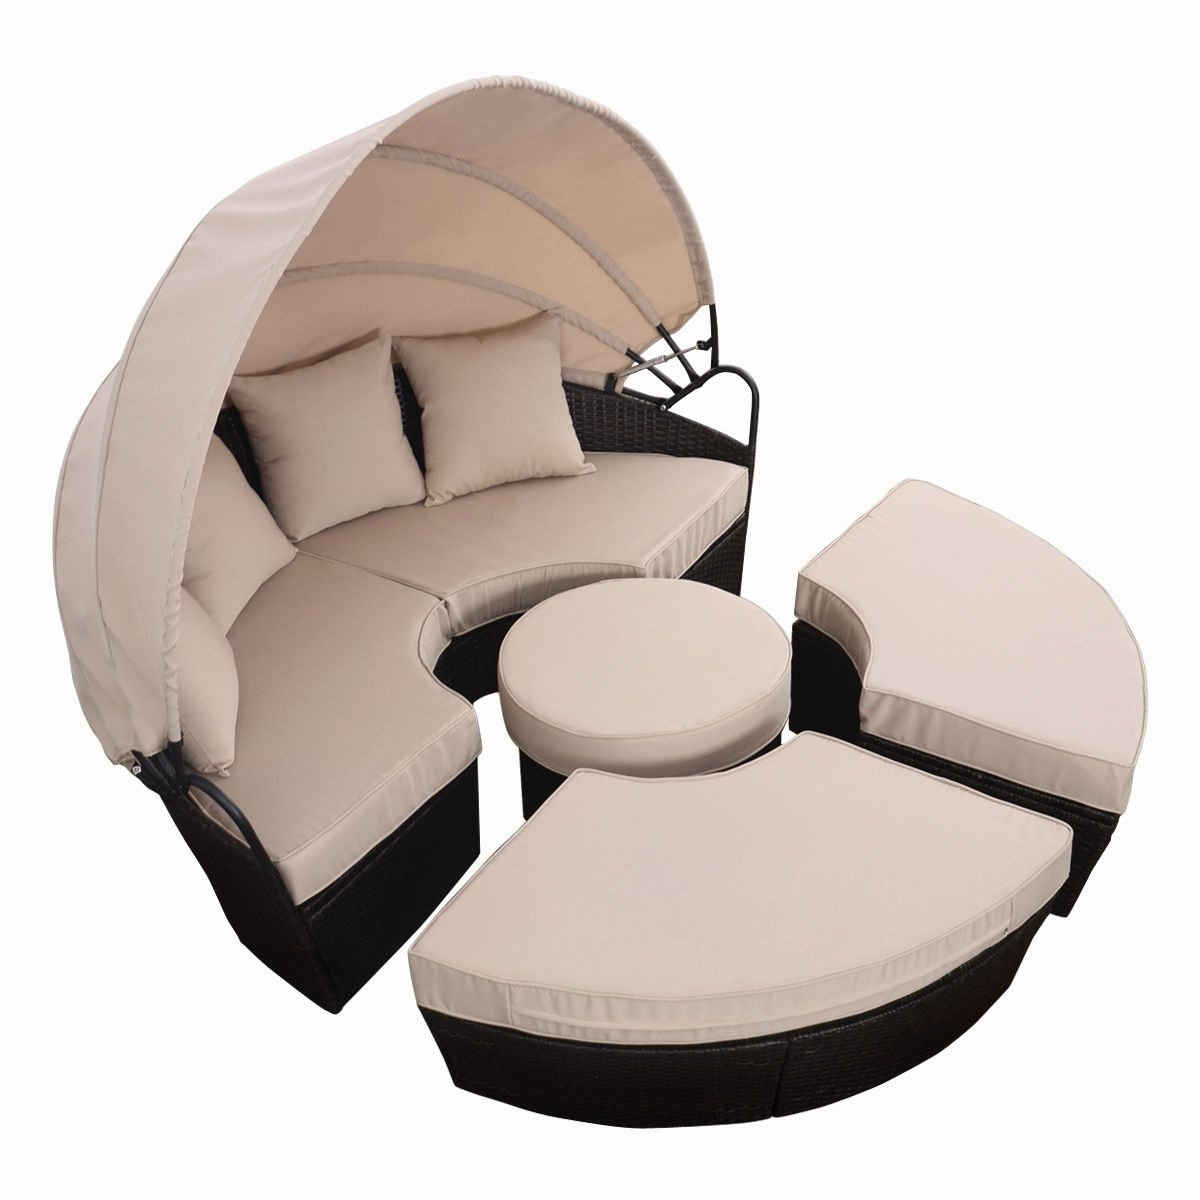 Shop Costway Rattan Sofa Furniture Round Retractable W/canopy Daybed Within Recent Round Sofa Chairs (View 17 of 20)